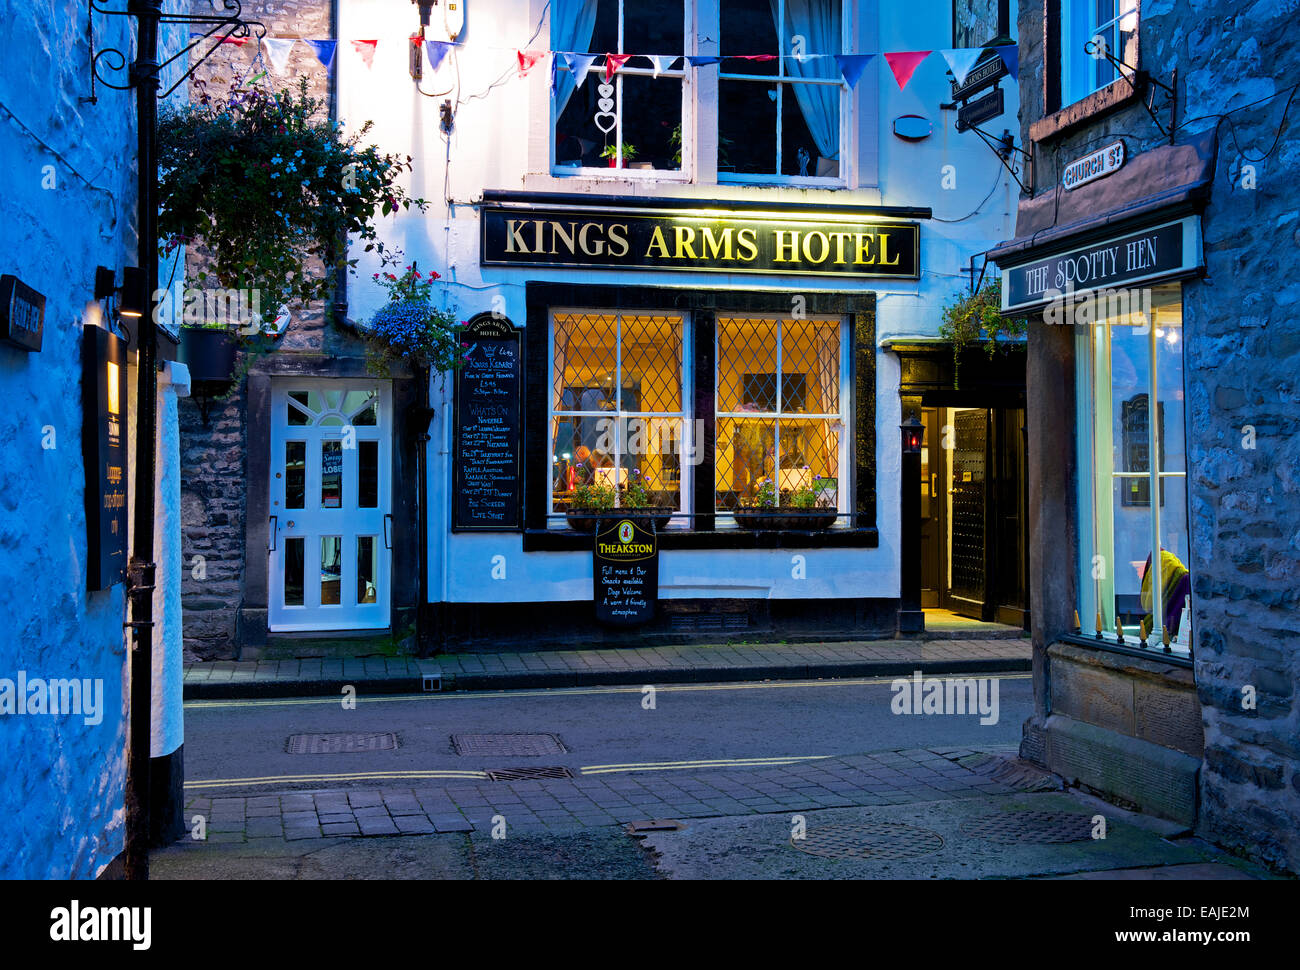 Kings Arms Stock Photos Amp Kings Arms Stock Images Alamy